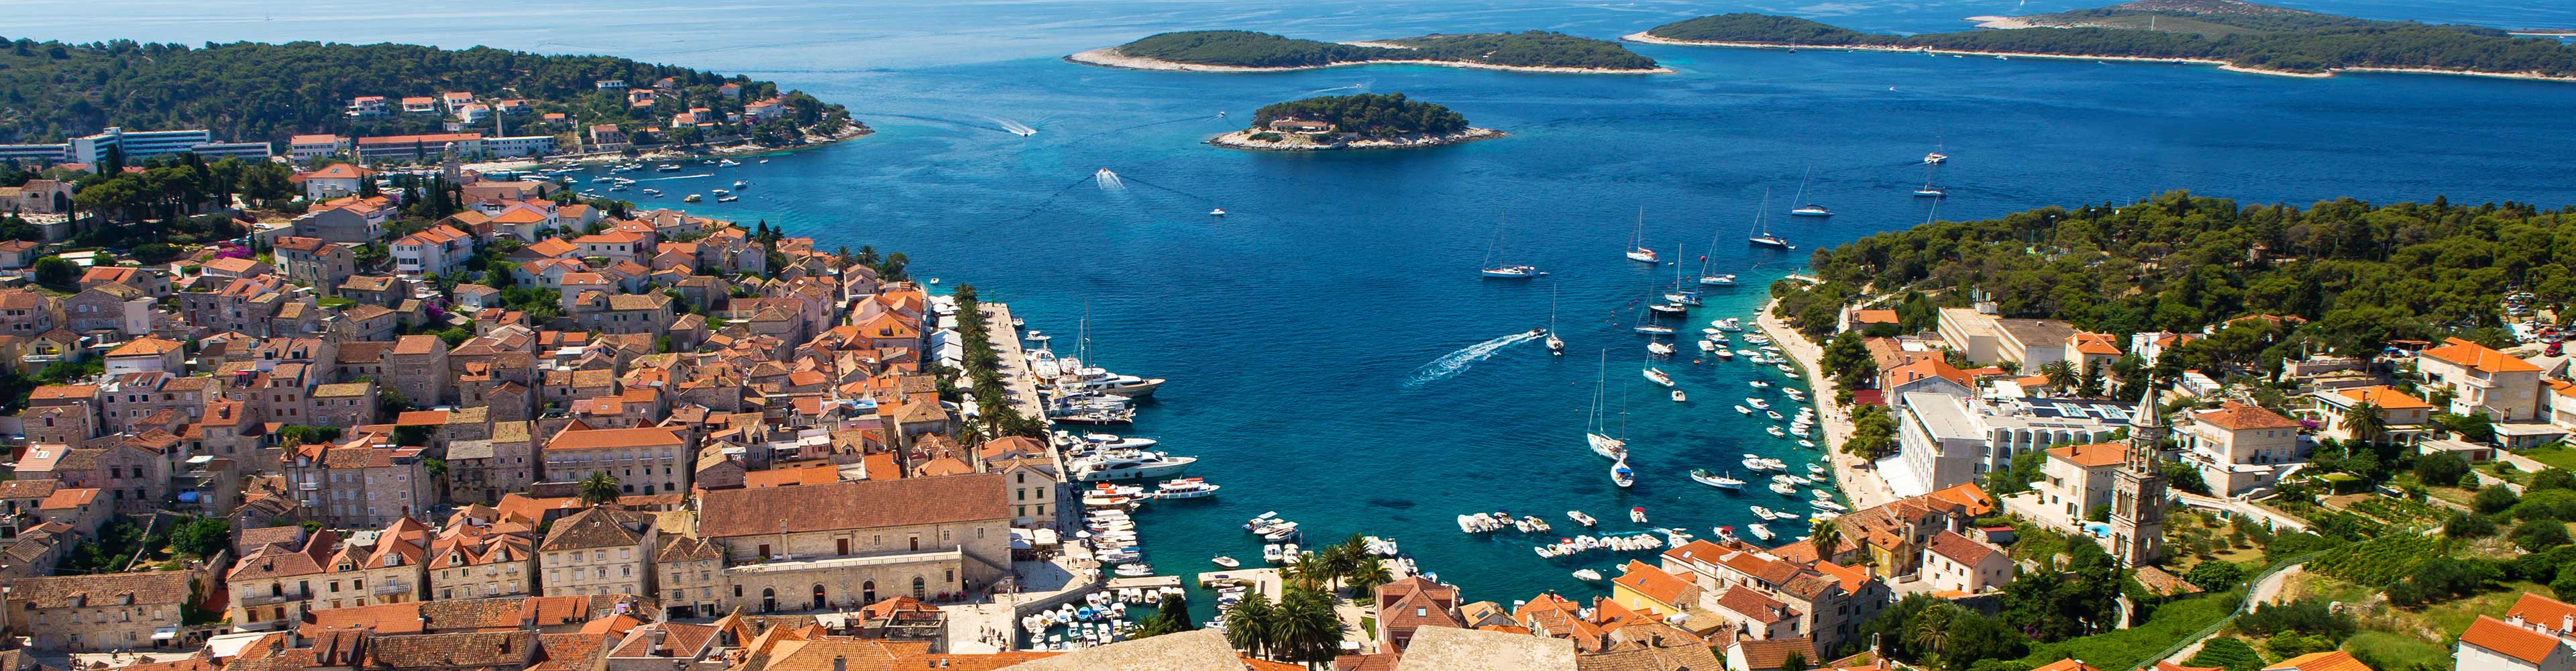 Cruise Croatia: Split to Dubrovnik via Zadar